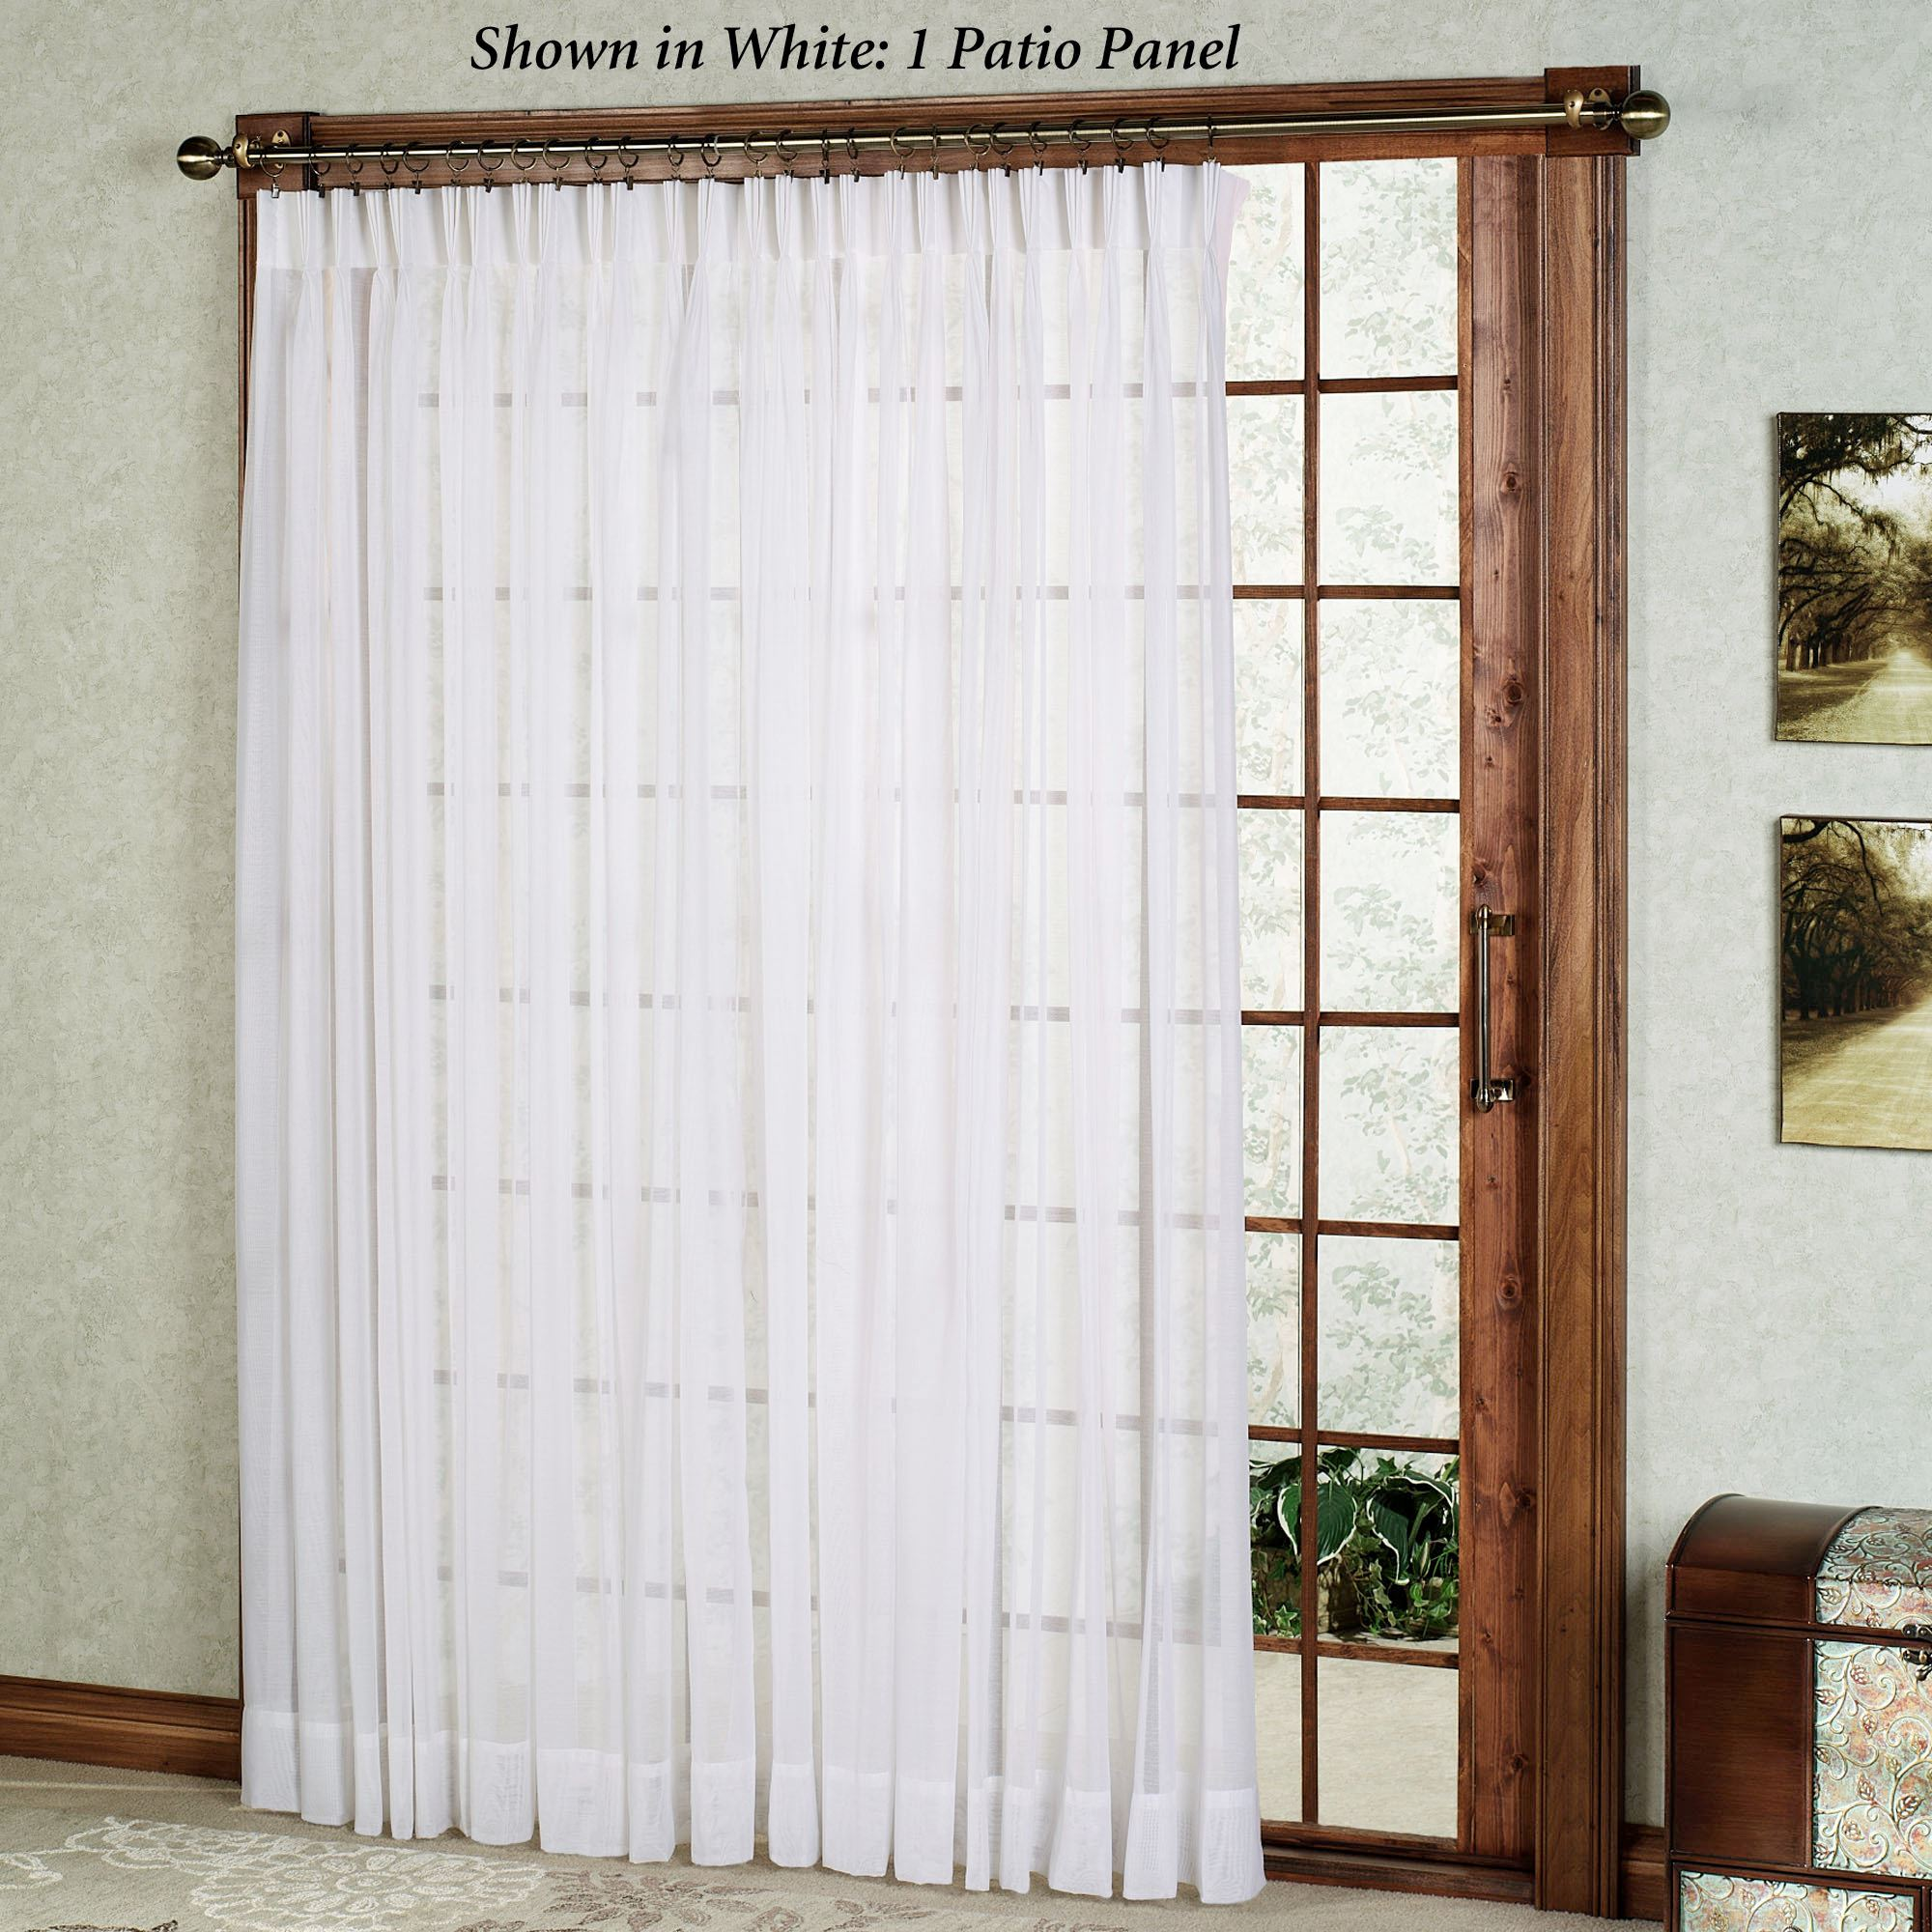 Click to expand & Splendor Semi Sheer Pinch Pleat Patio Panel